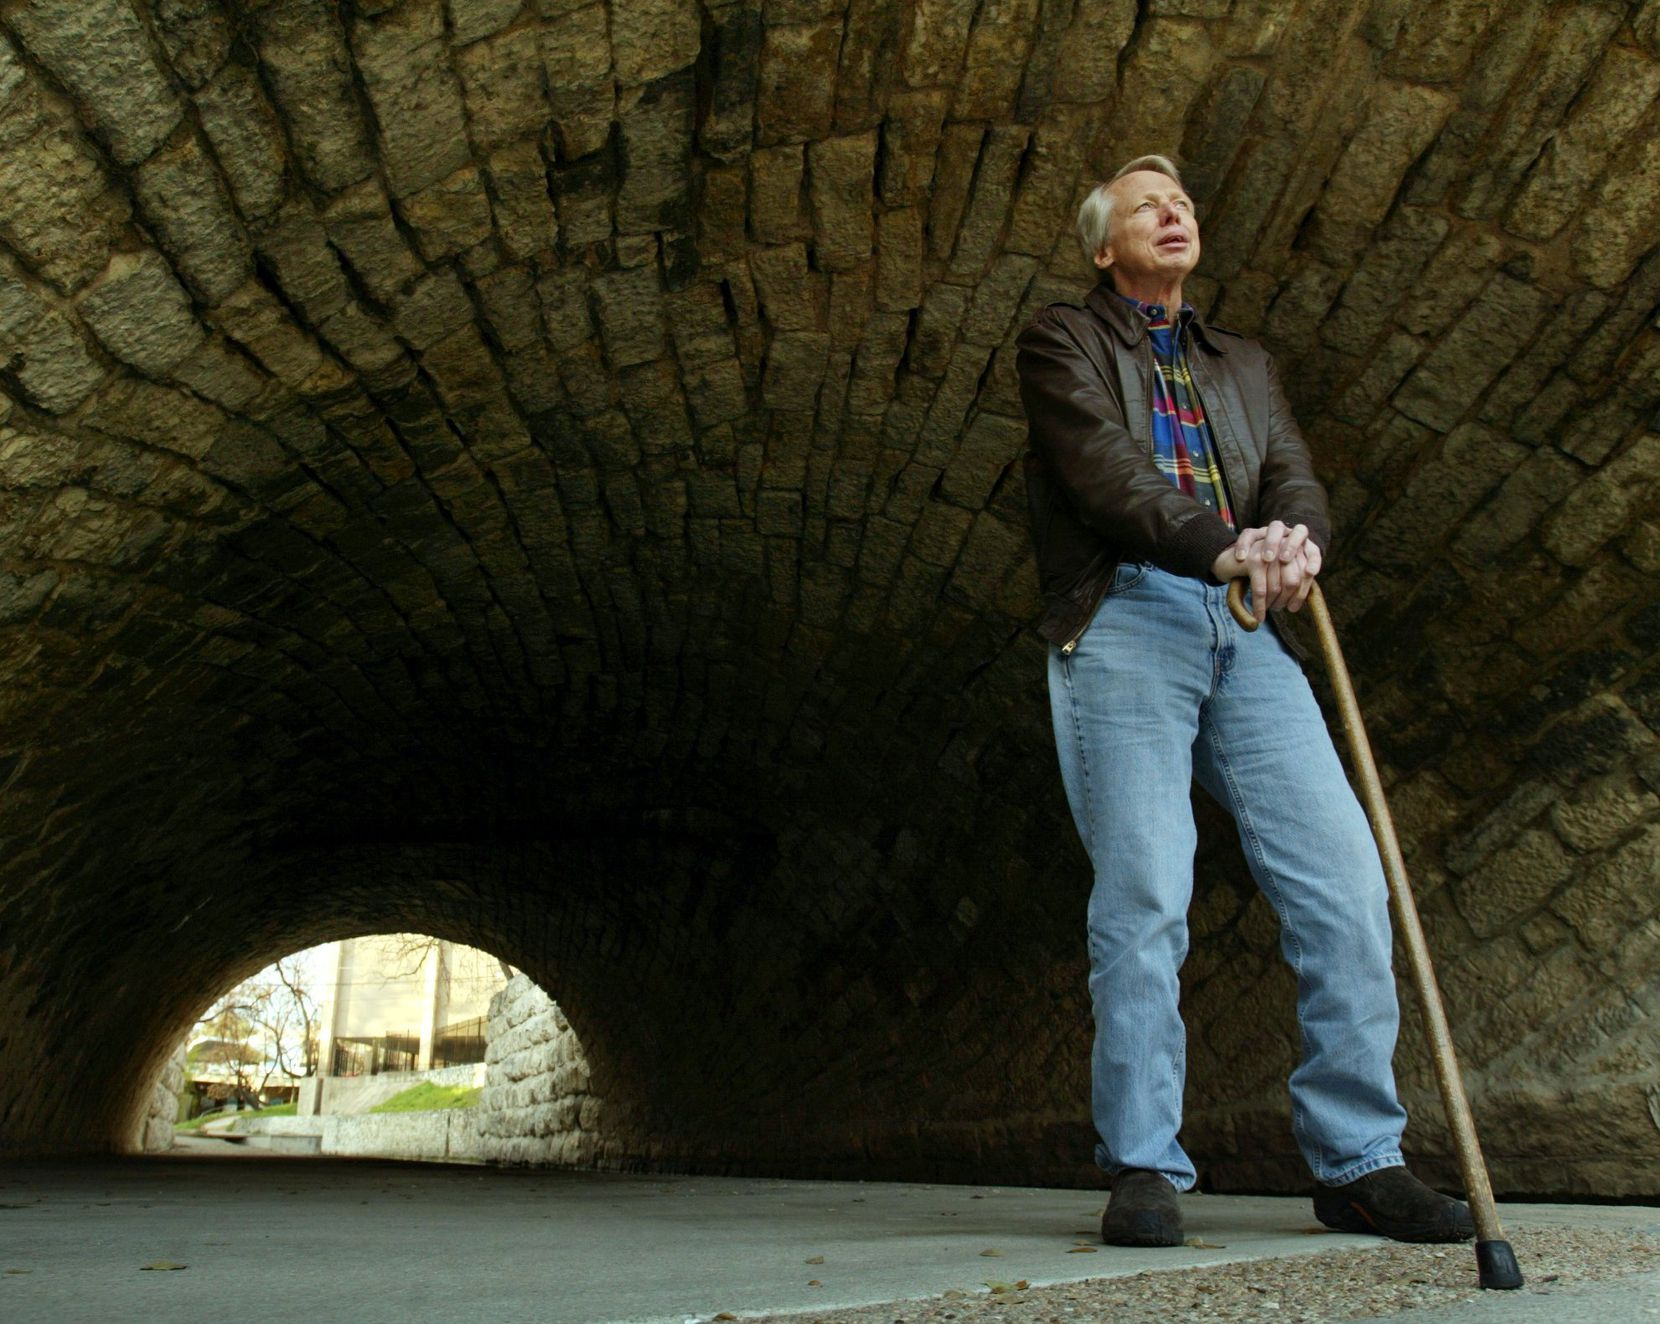 Jan Reid, shown here in 2002, was shot during a robbery in Mexico City and spent a long time after in recovery and physical rehabilitation.